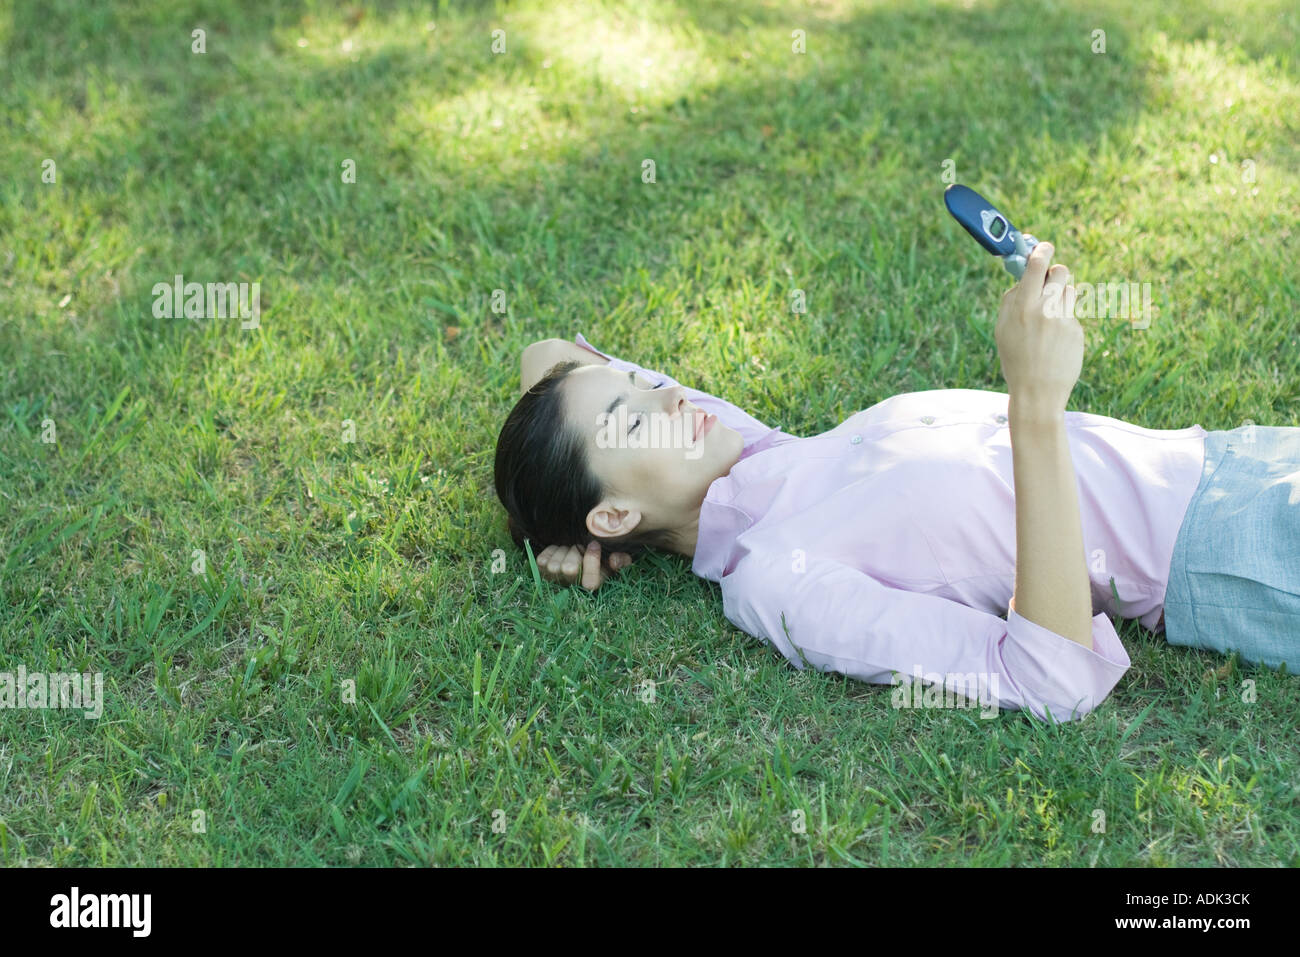 Businesswoman lying in grass, looking at cell phone - Stock Image